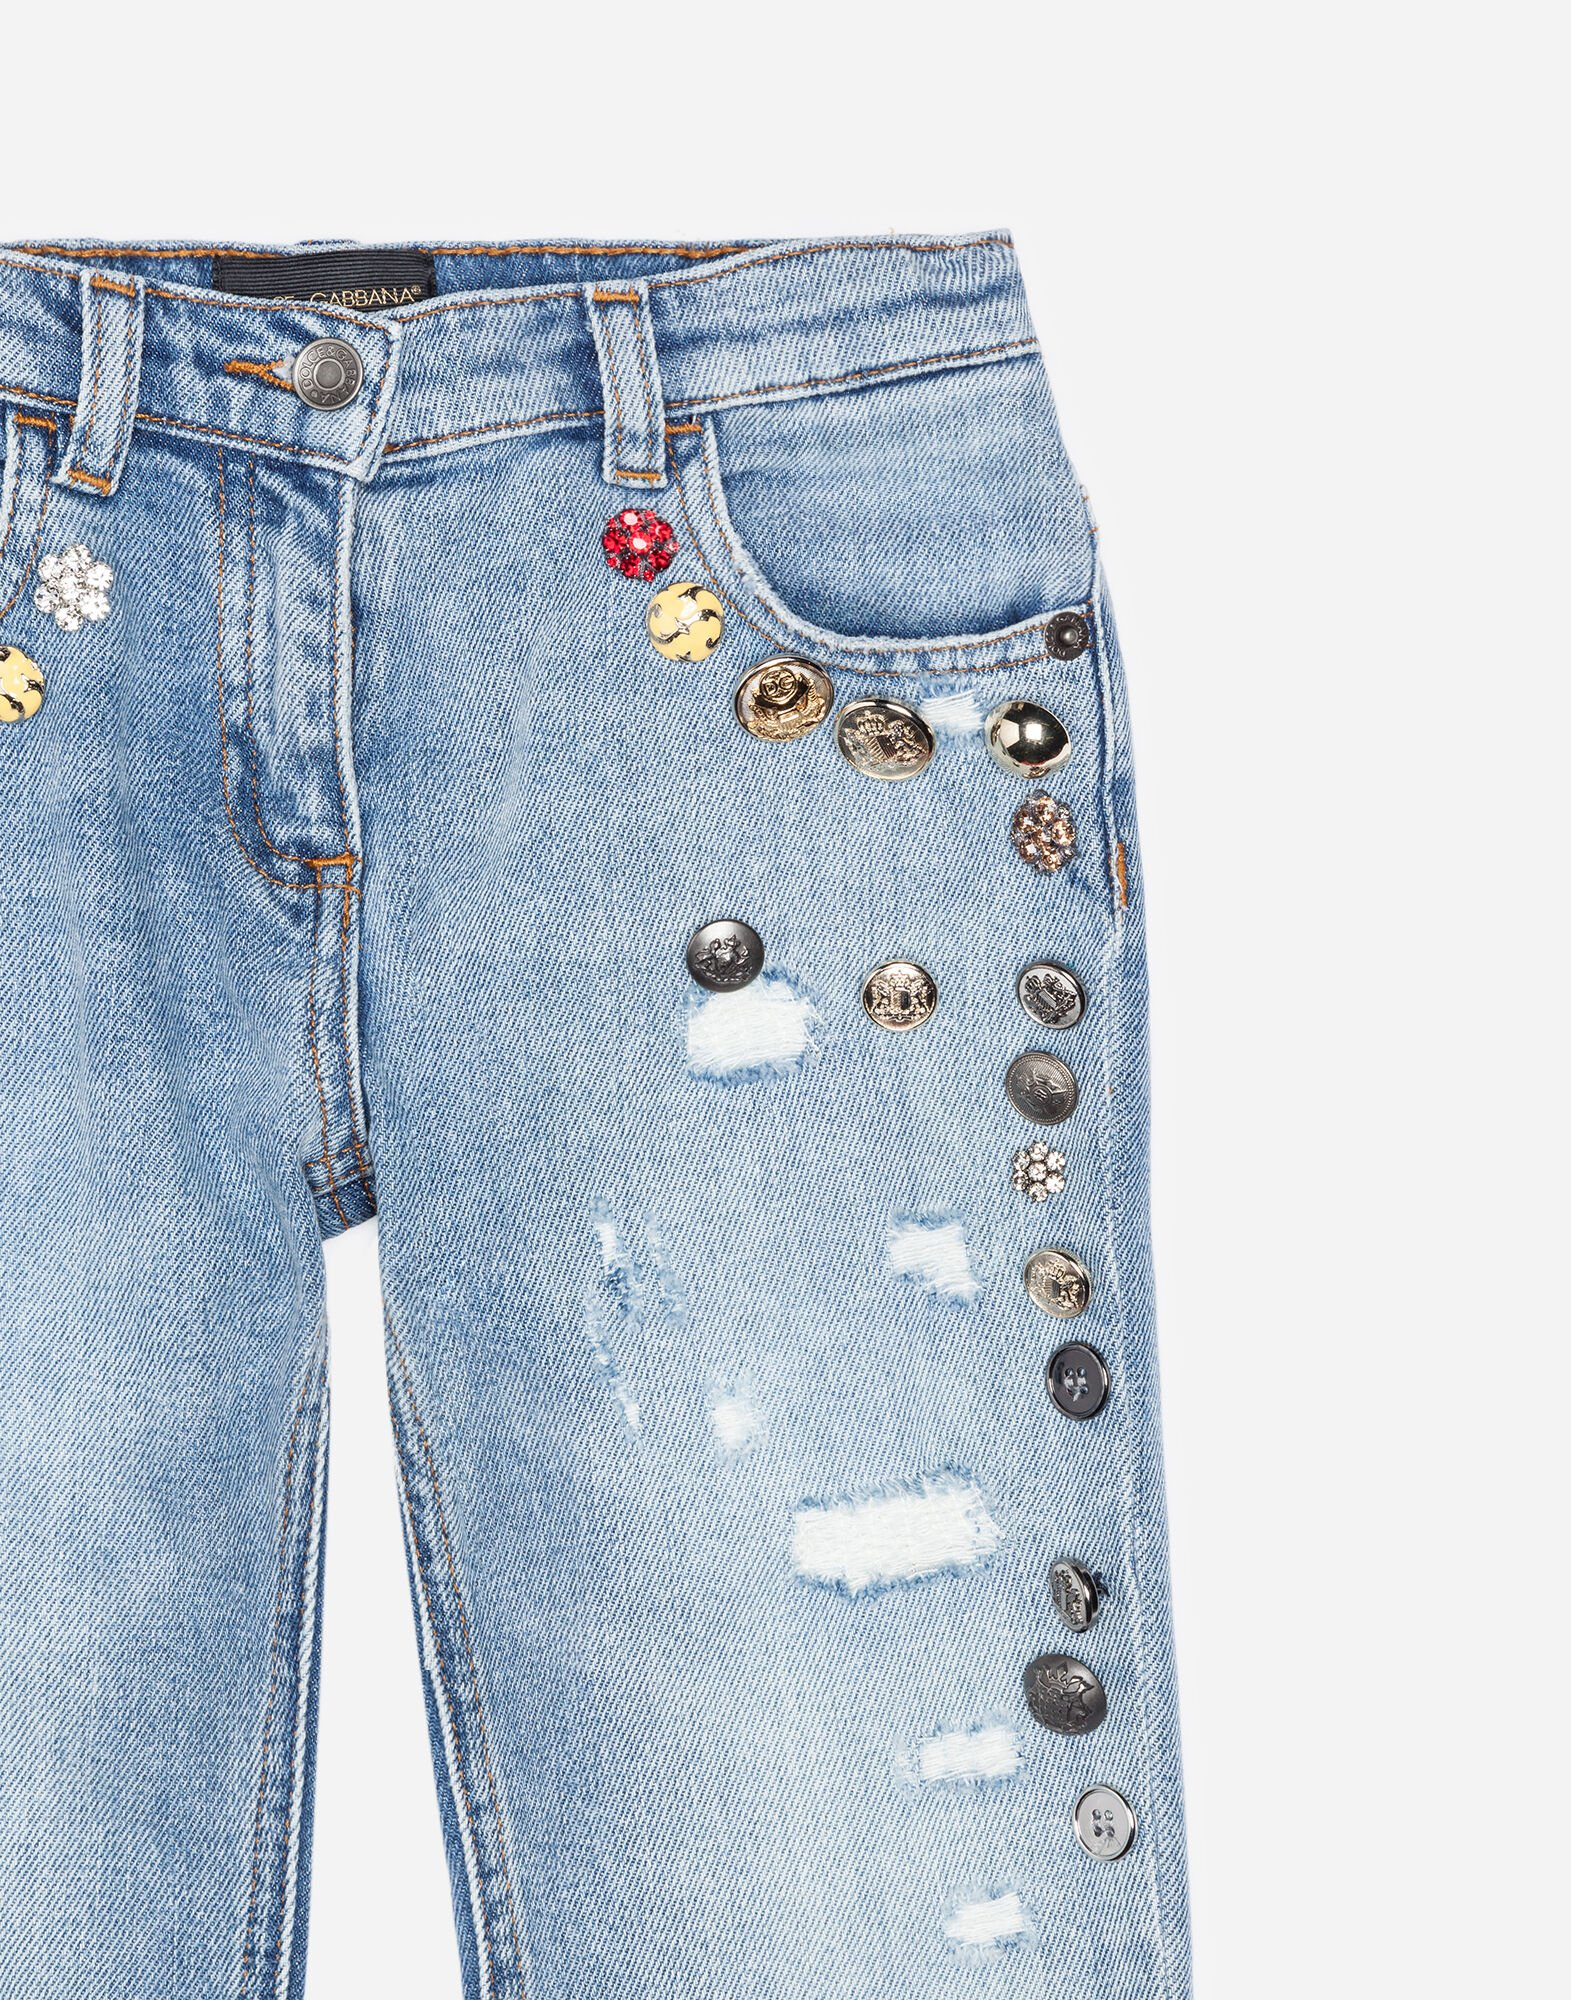 STRETCH JEANS WITH BEJEWELED APPLIQUÉ